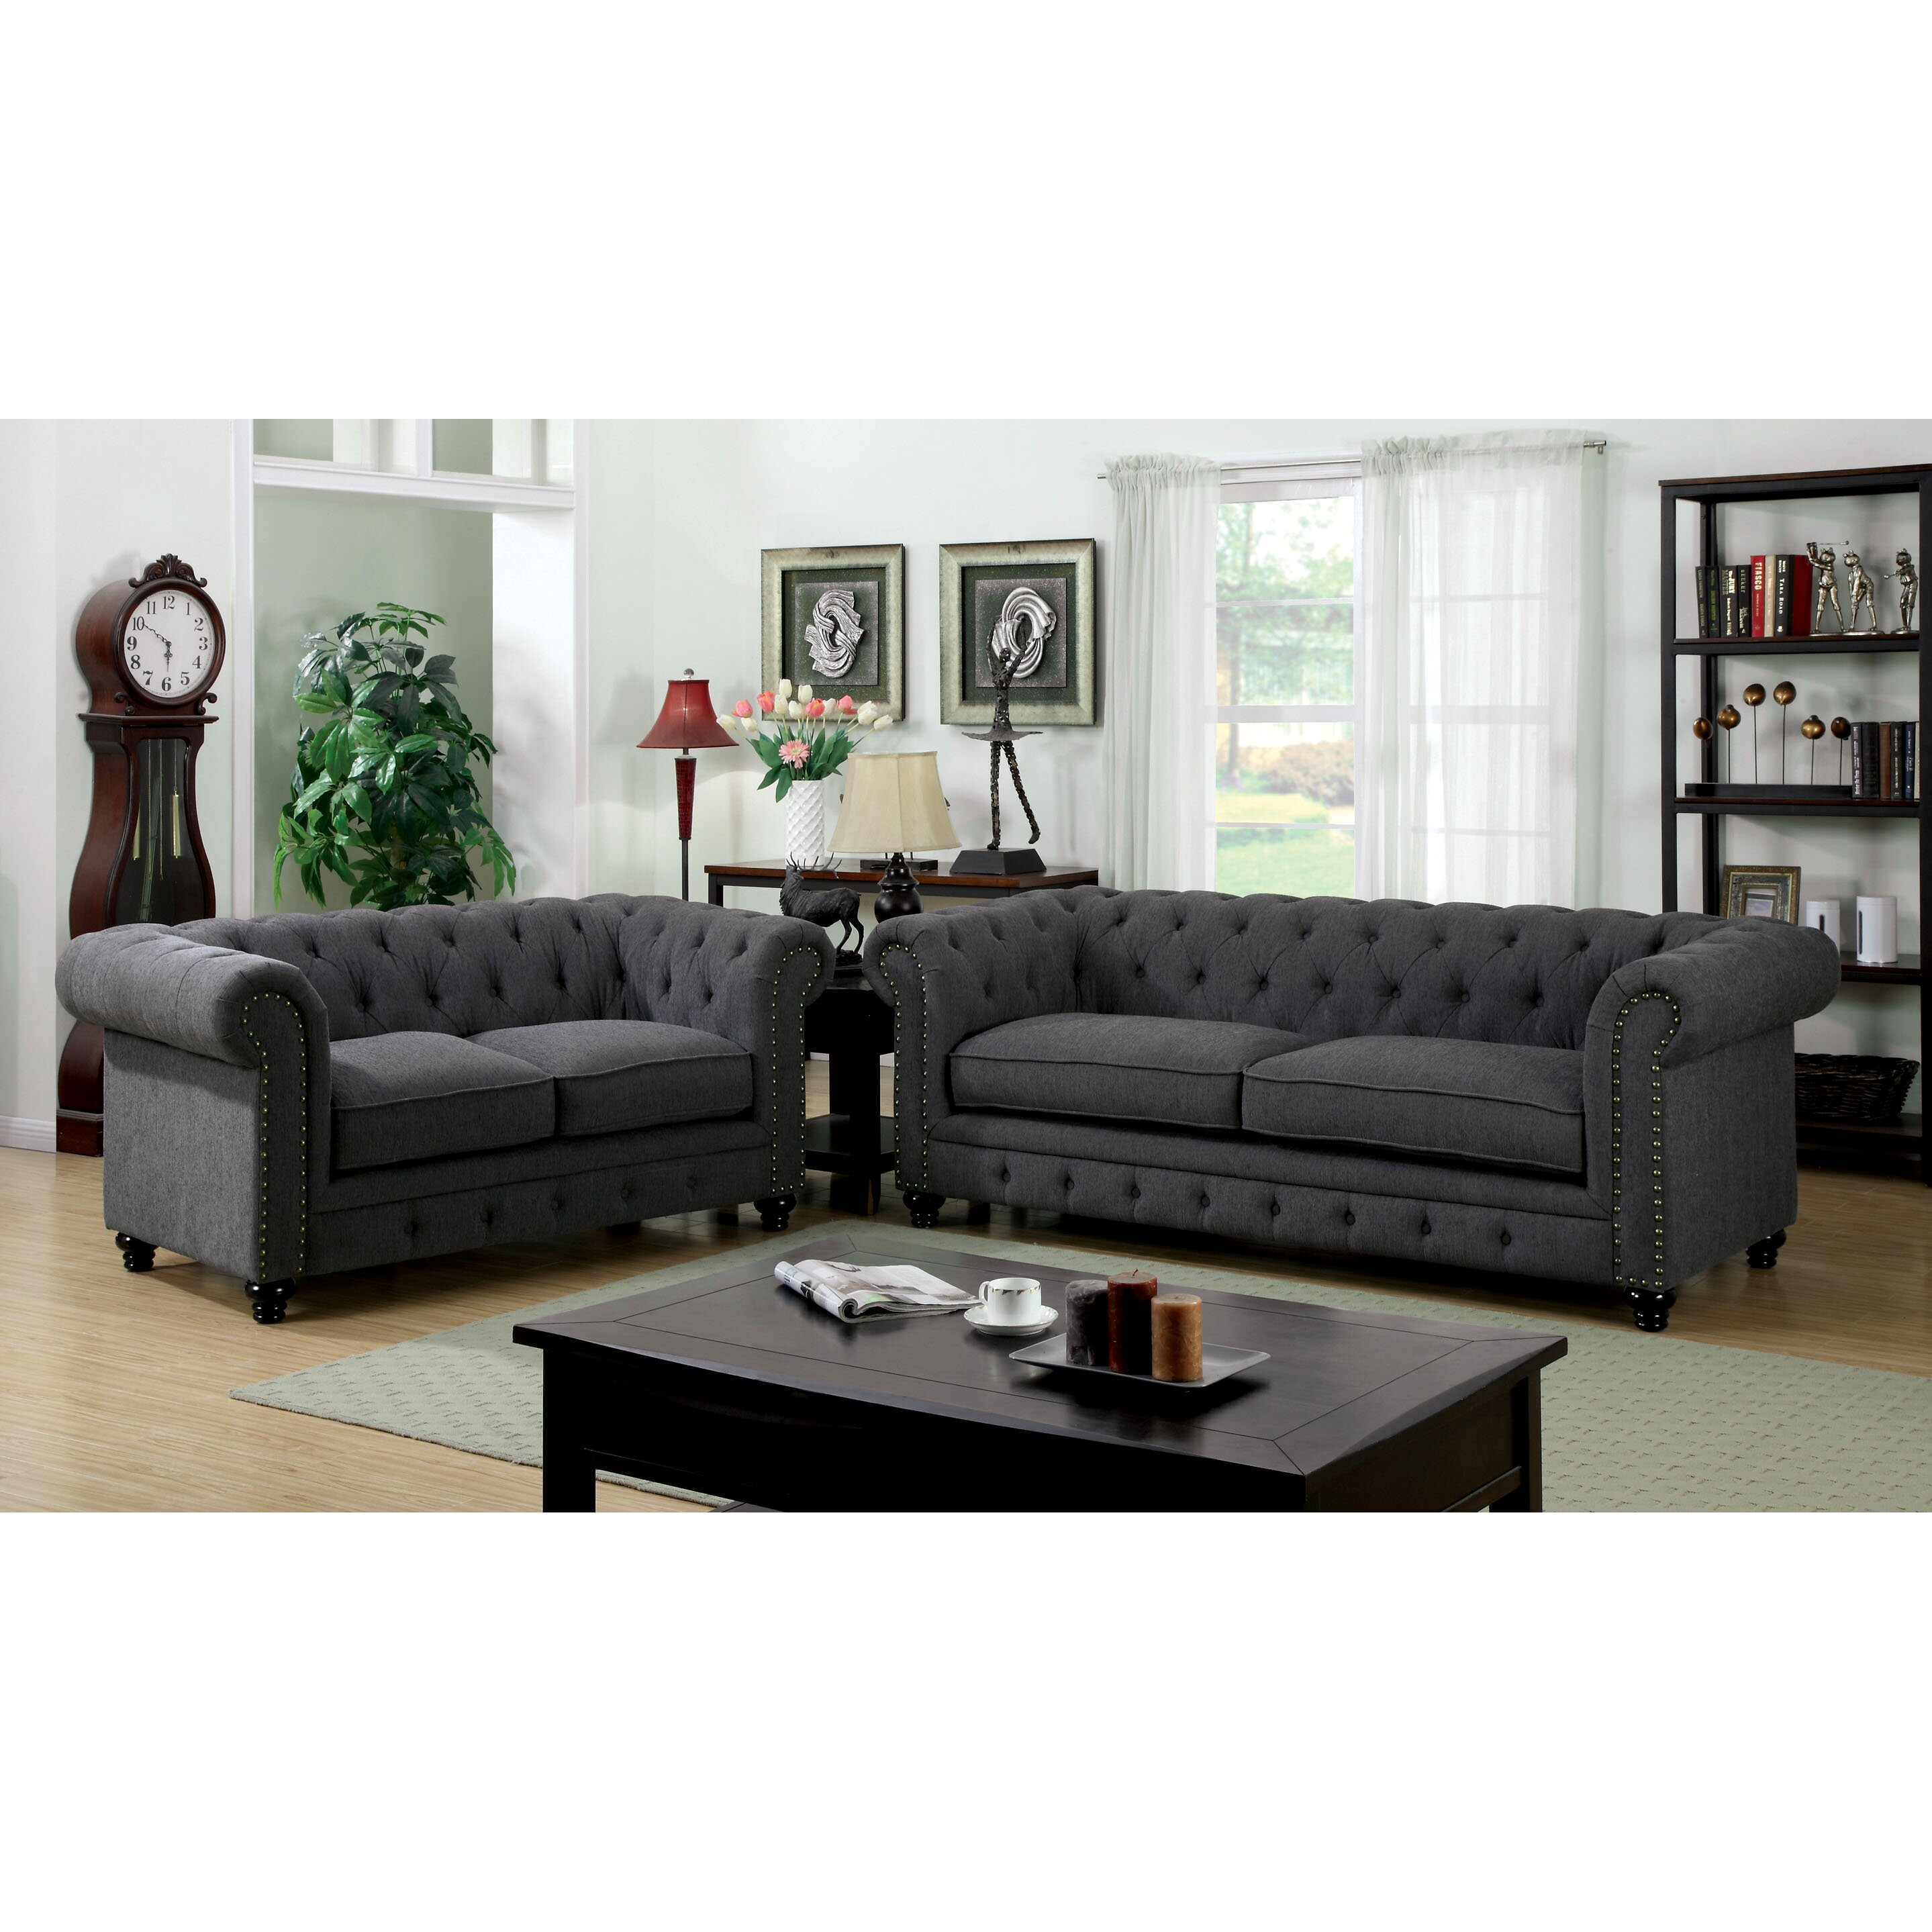 Hokku Designs Cedric Living Room Collection Reviews Wayfair